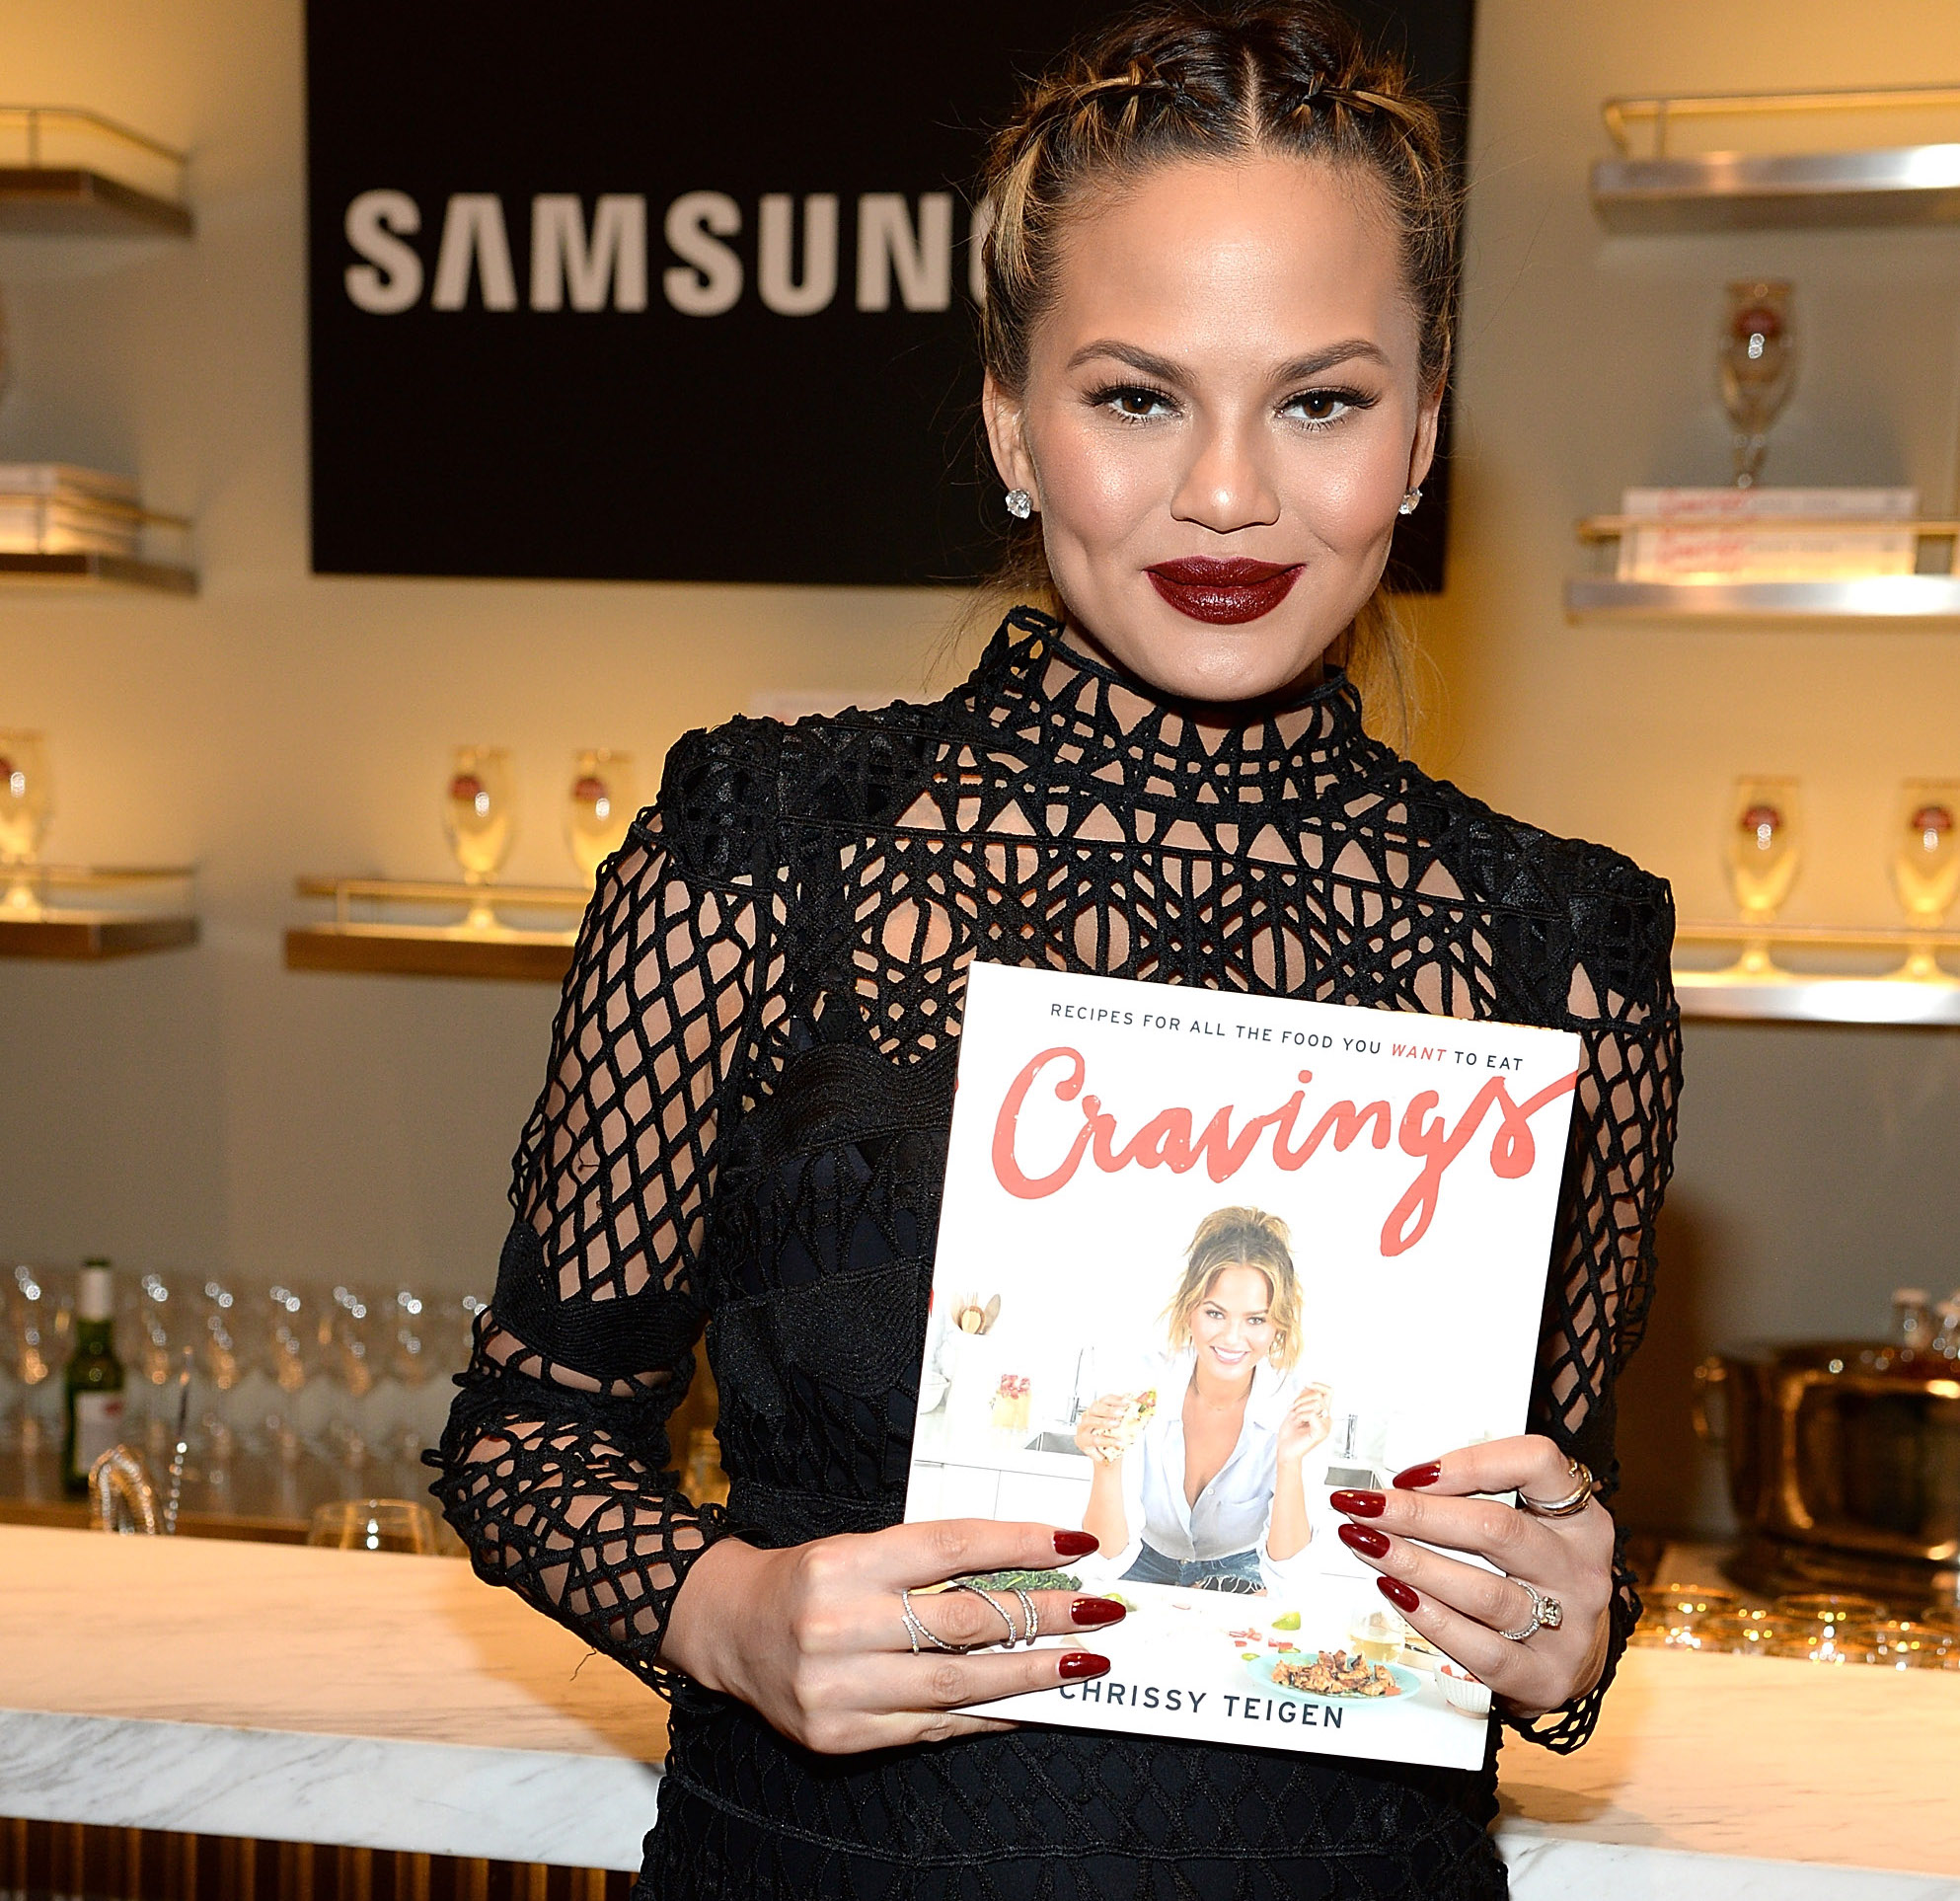 I cooked dinner from Chrissy Teigen's cookbook for a week, and it was amazing